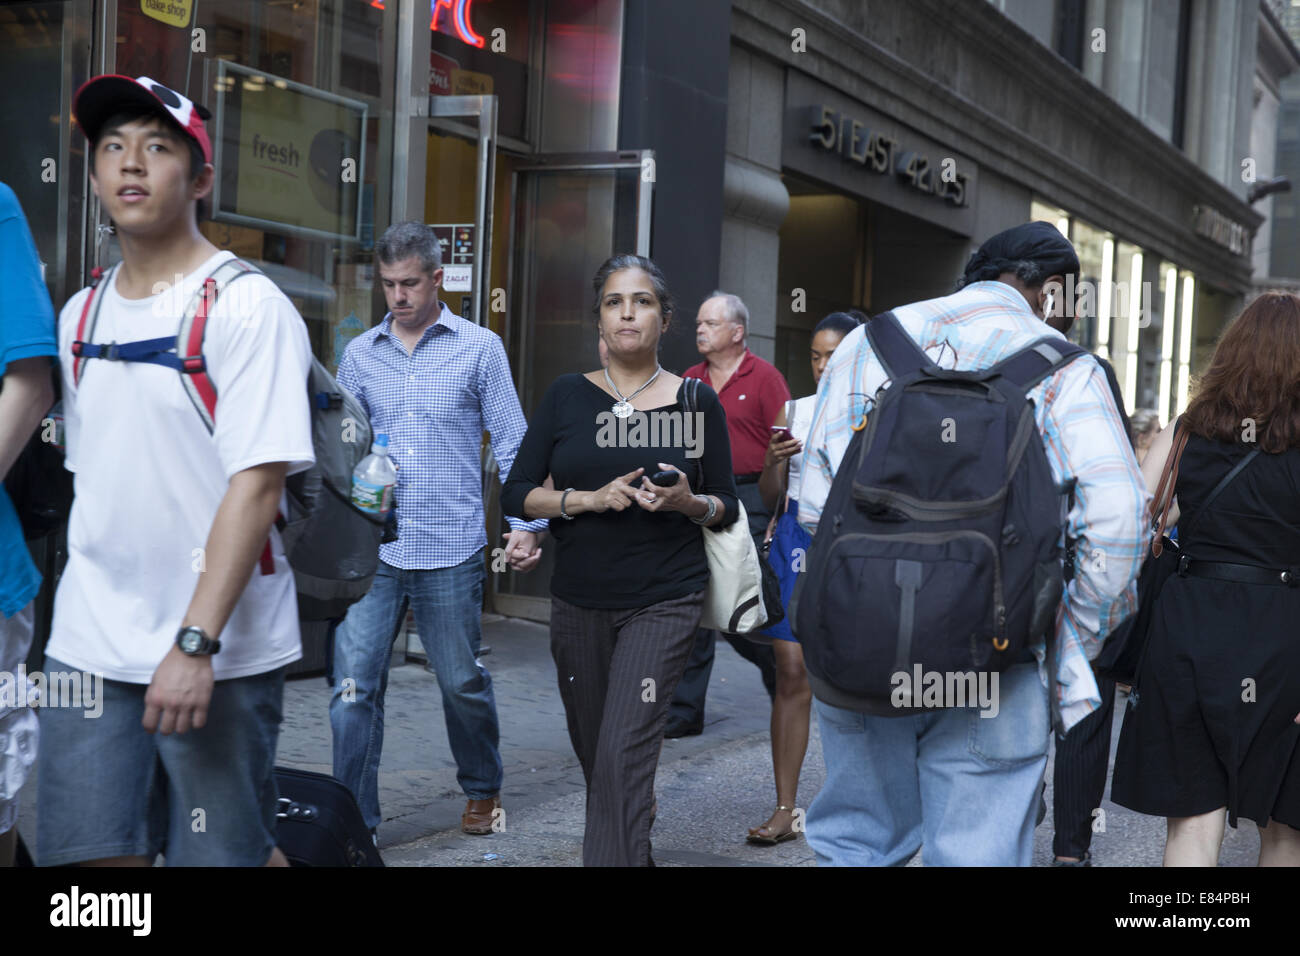 People walk along E. 42nd St.in Manhattan, NYC. - Stock Image